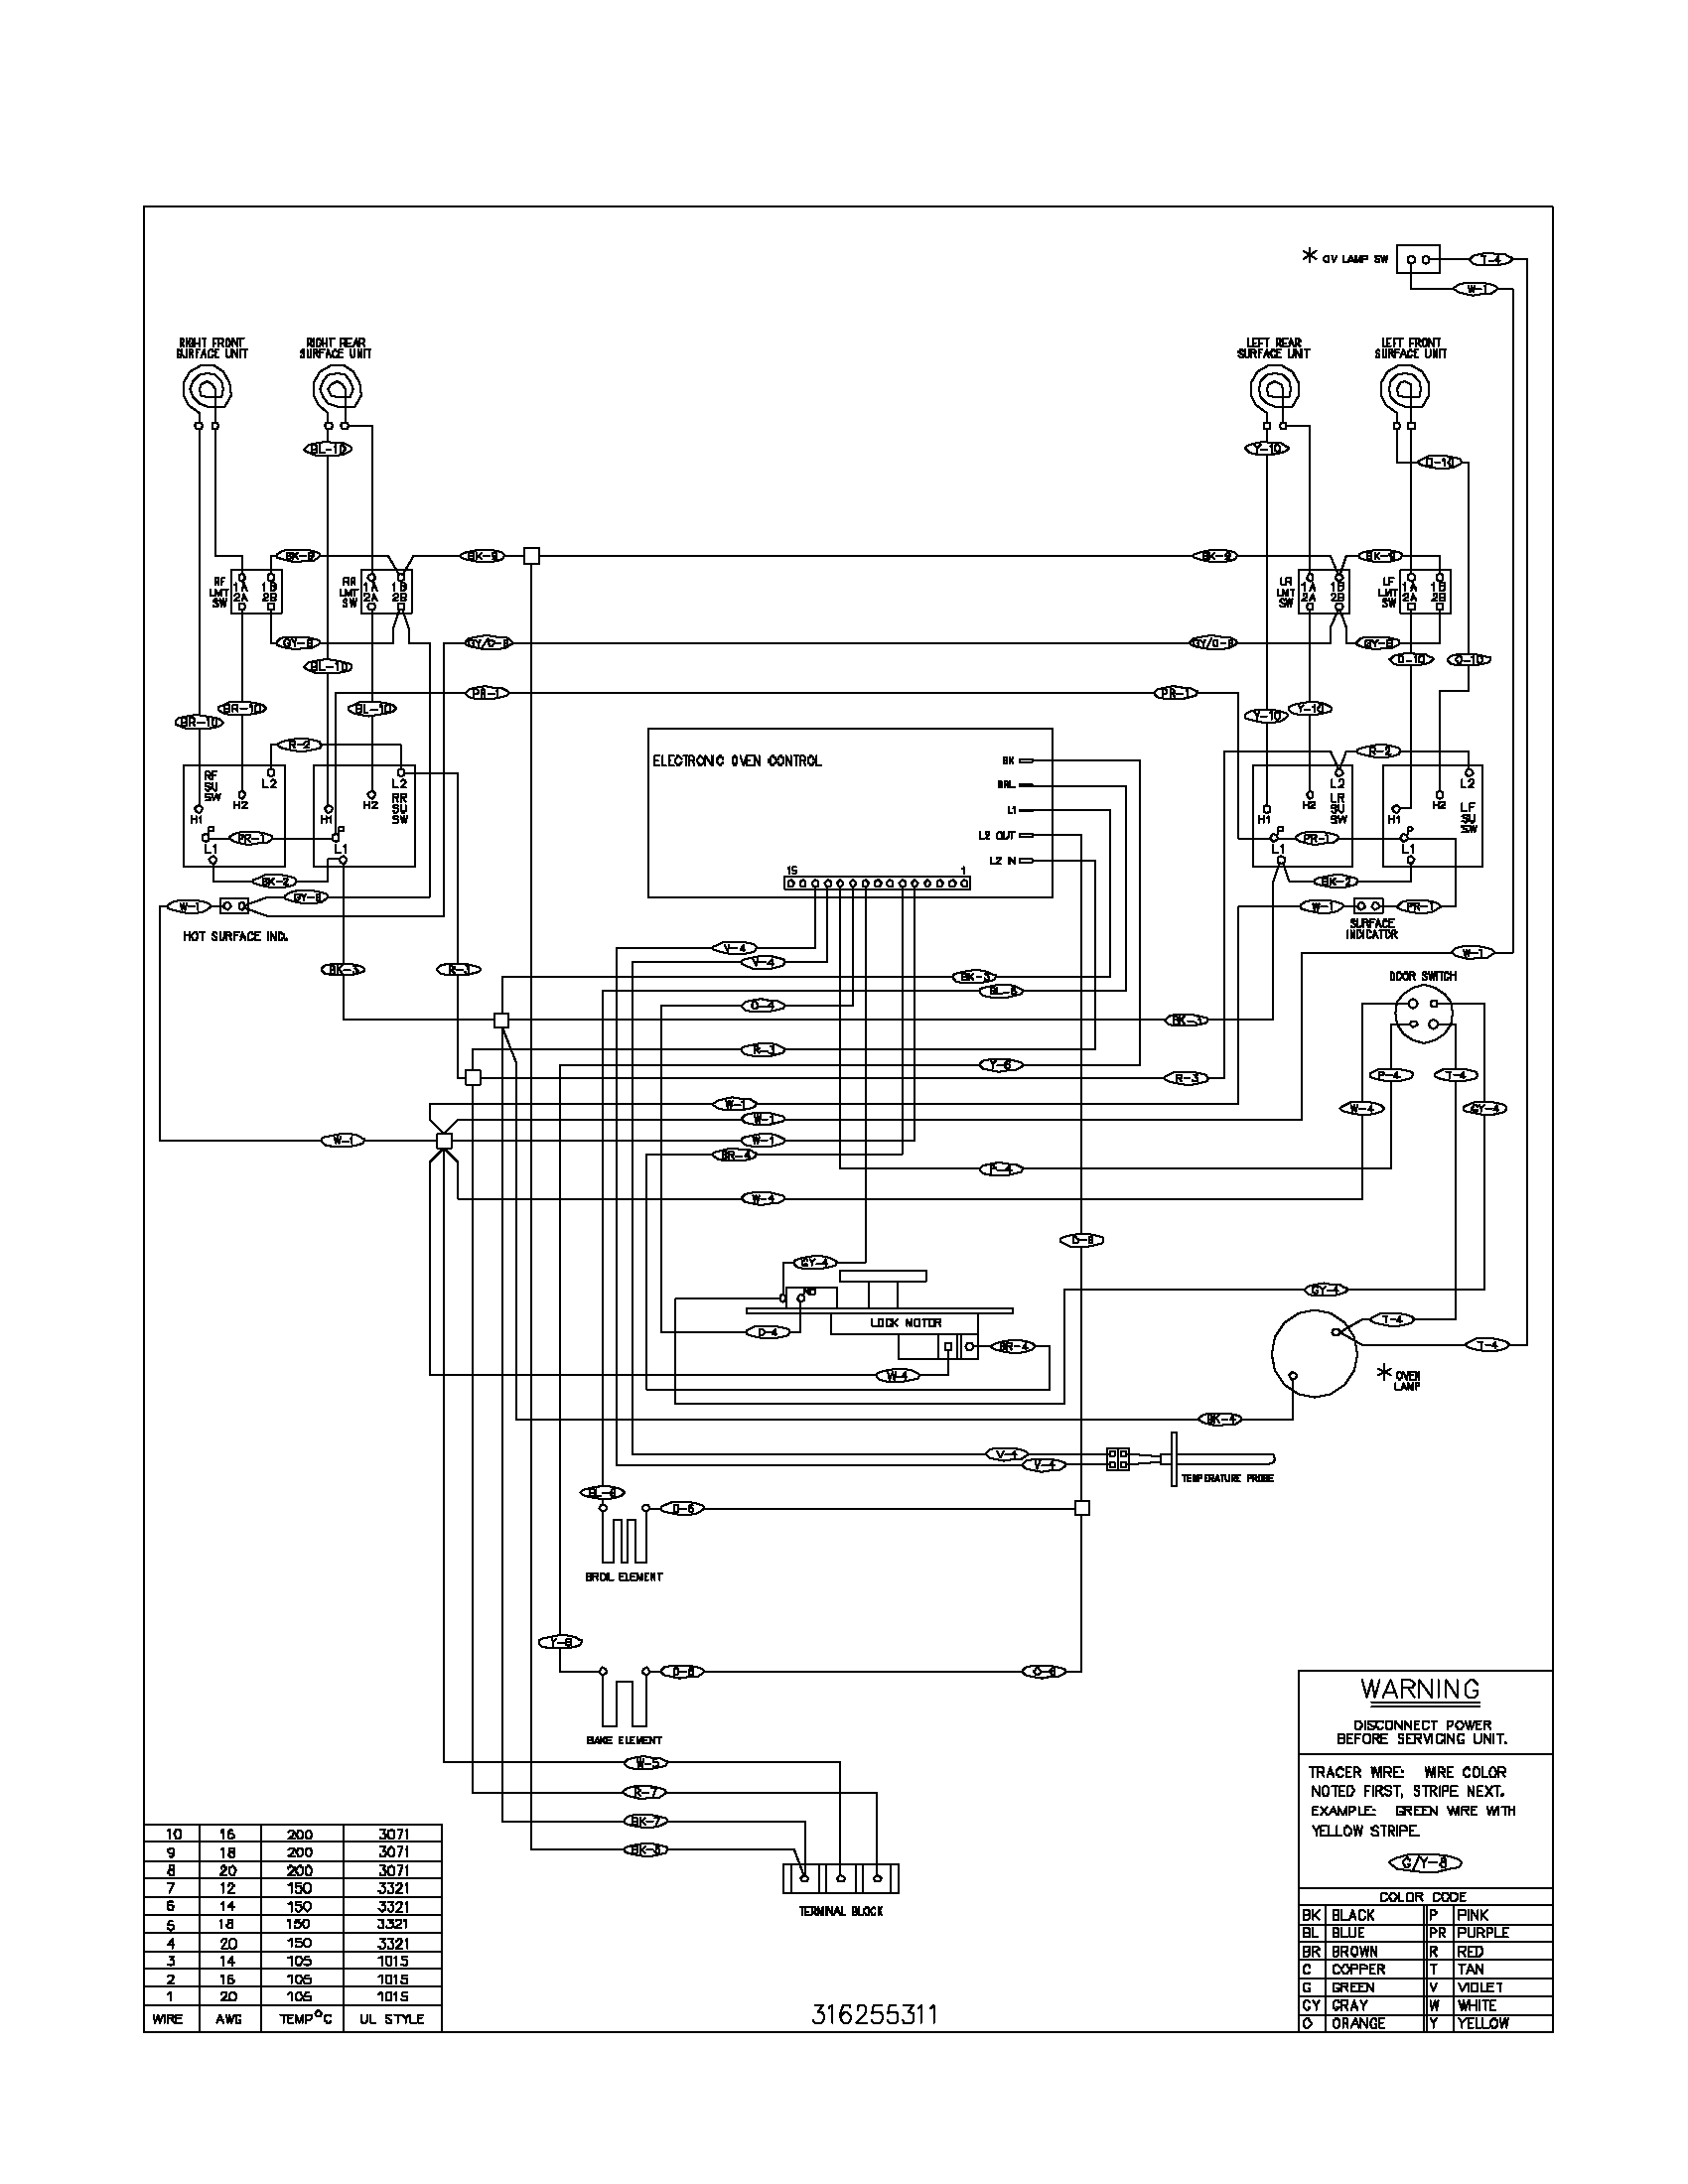 clark forklift wiring diagram images zers gt parts in addition clark forklift brake parts diagram